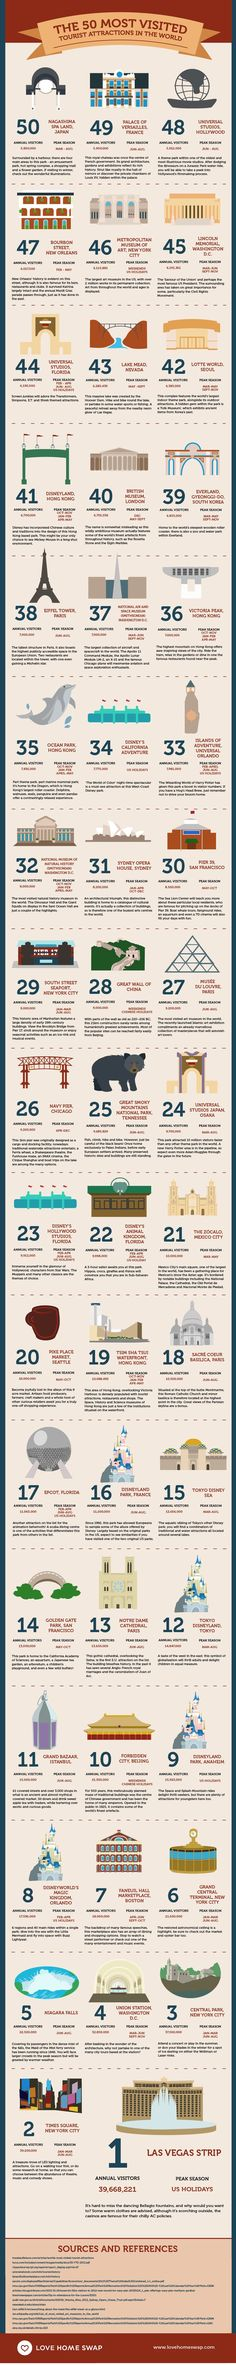 nice The World's 50 Most Visited Tourist Attractions